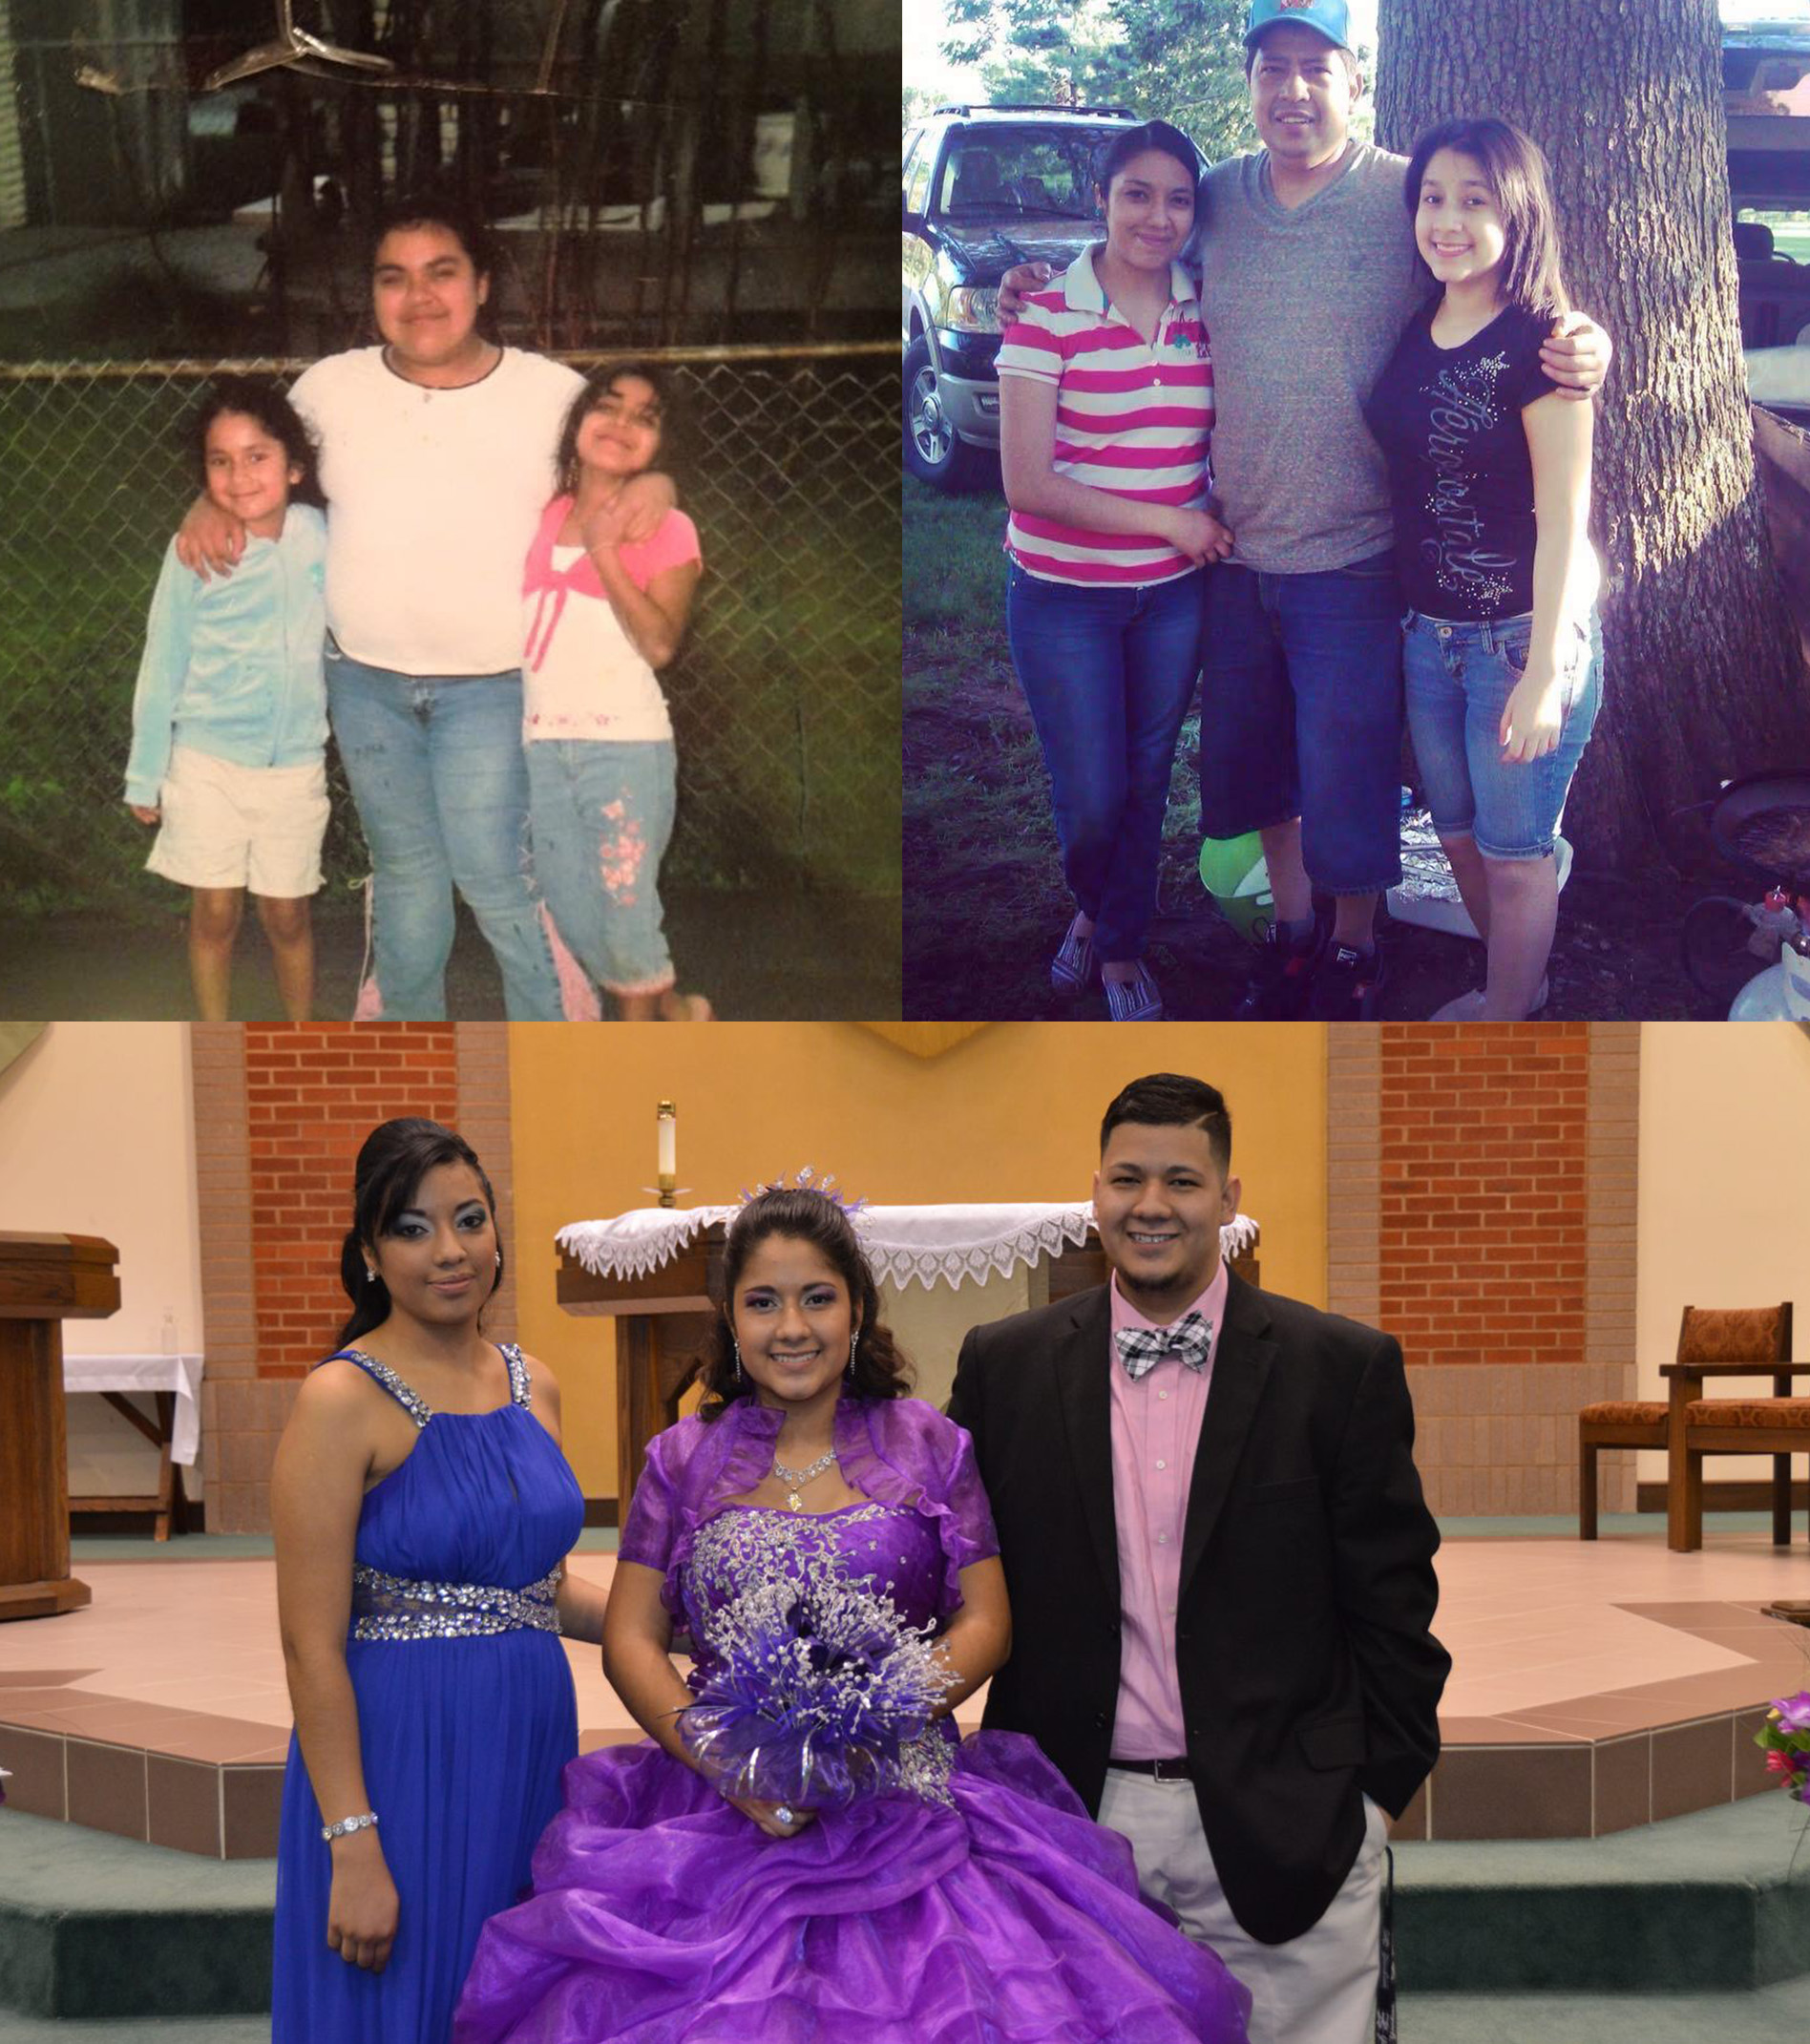 dith posing for a picture with her two older sibling Jeanette (Left) and Jose(Right) after her Quinceañera church ceremony.